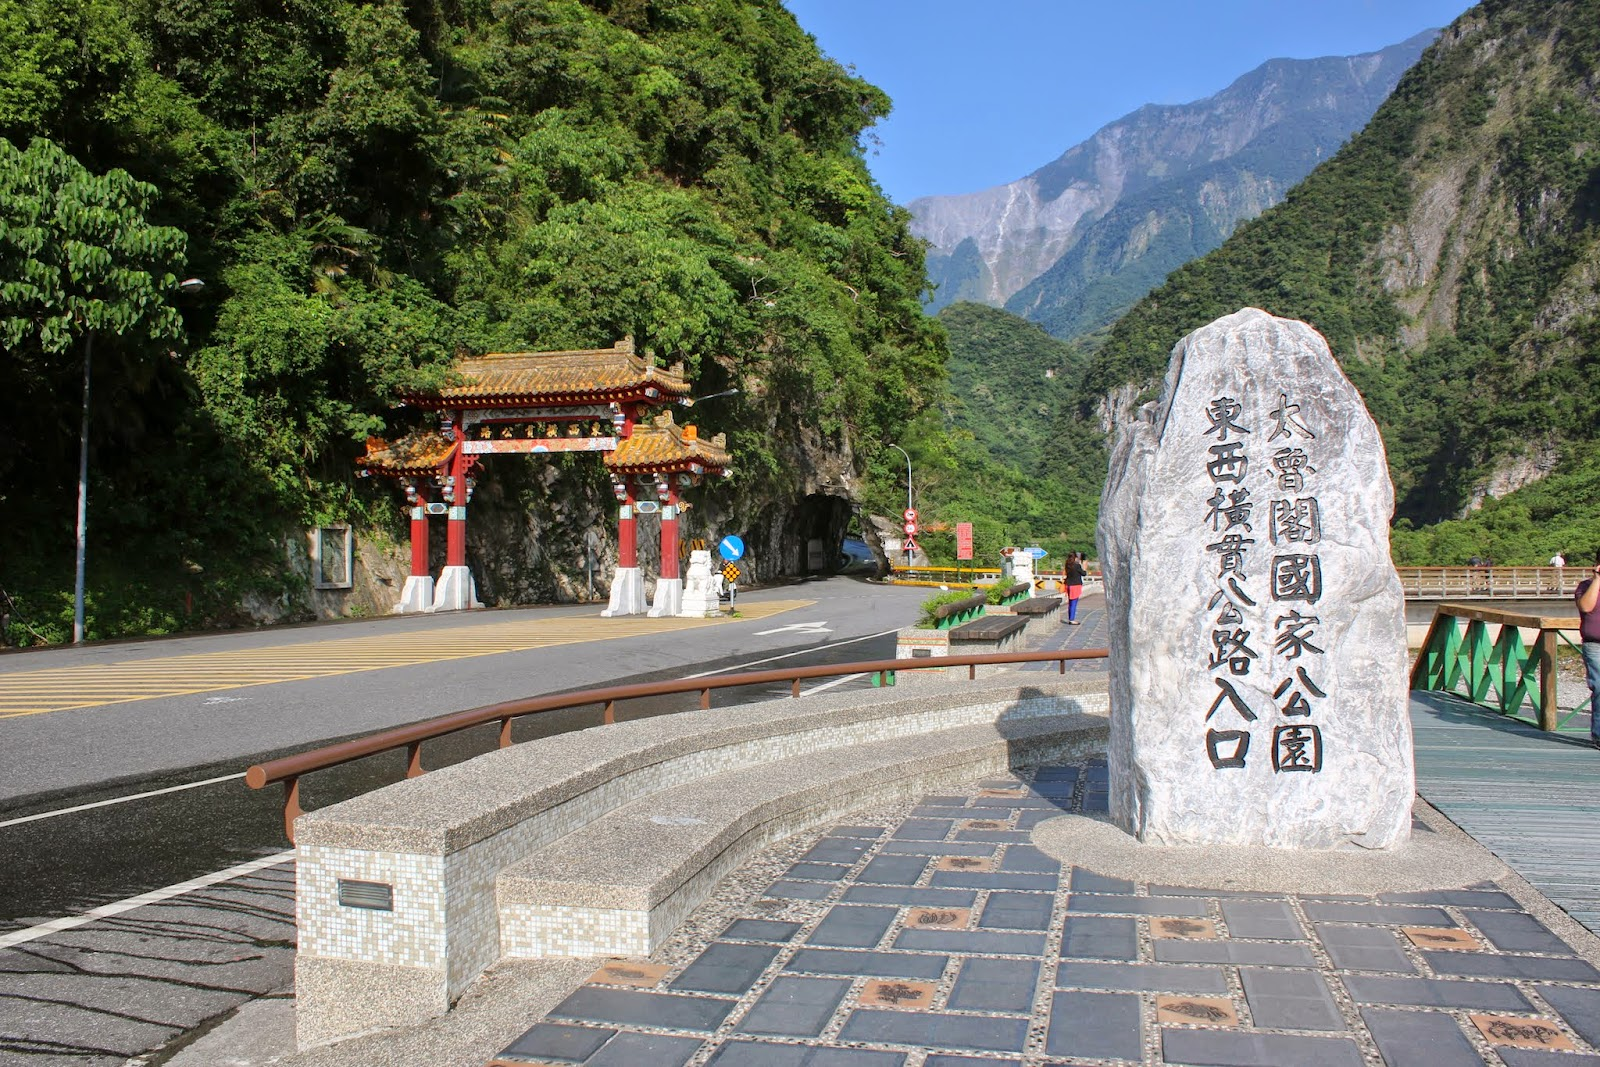 Welcome to Taroko Gorge National Park in Hualien, Taiwan